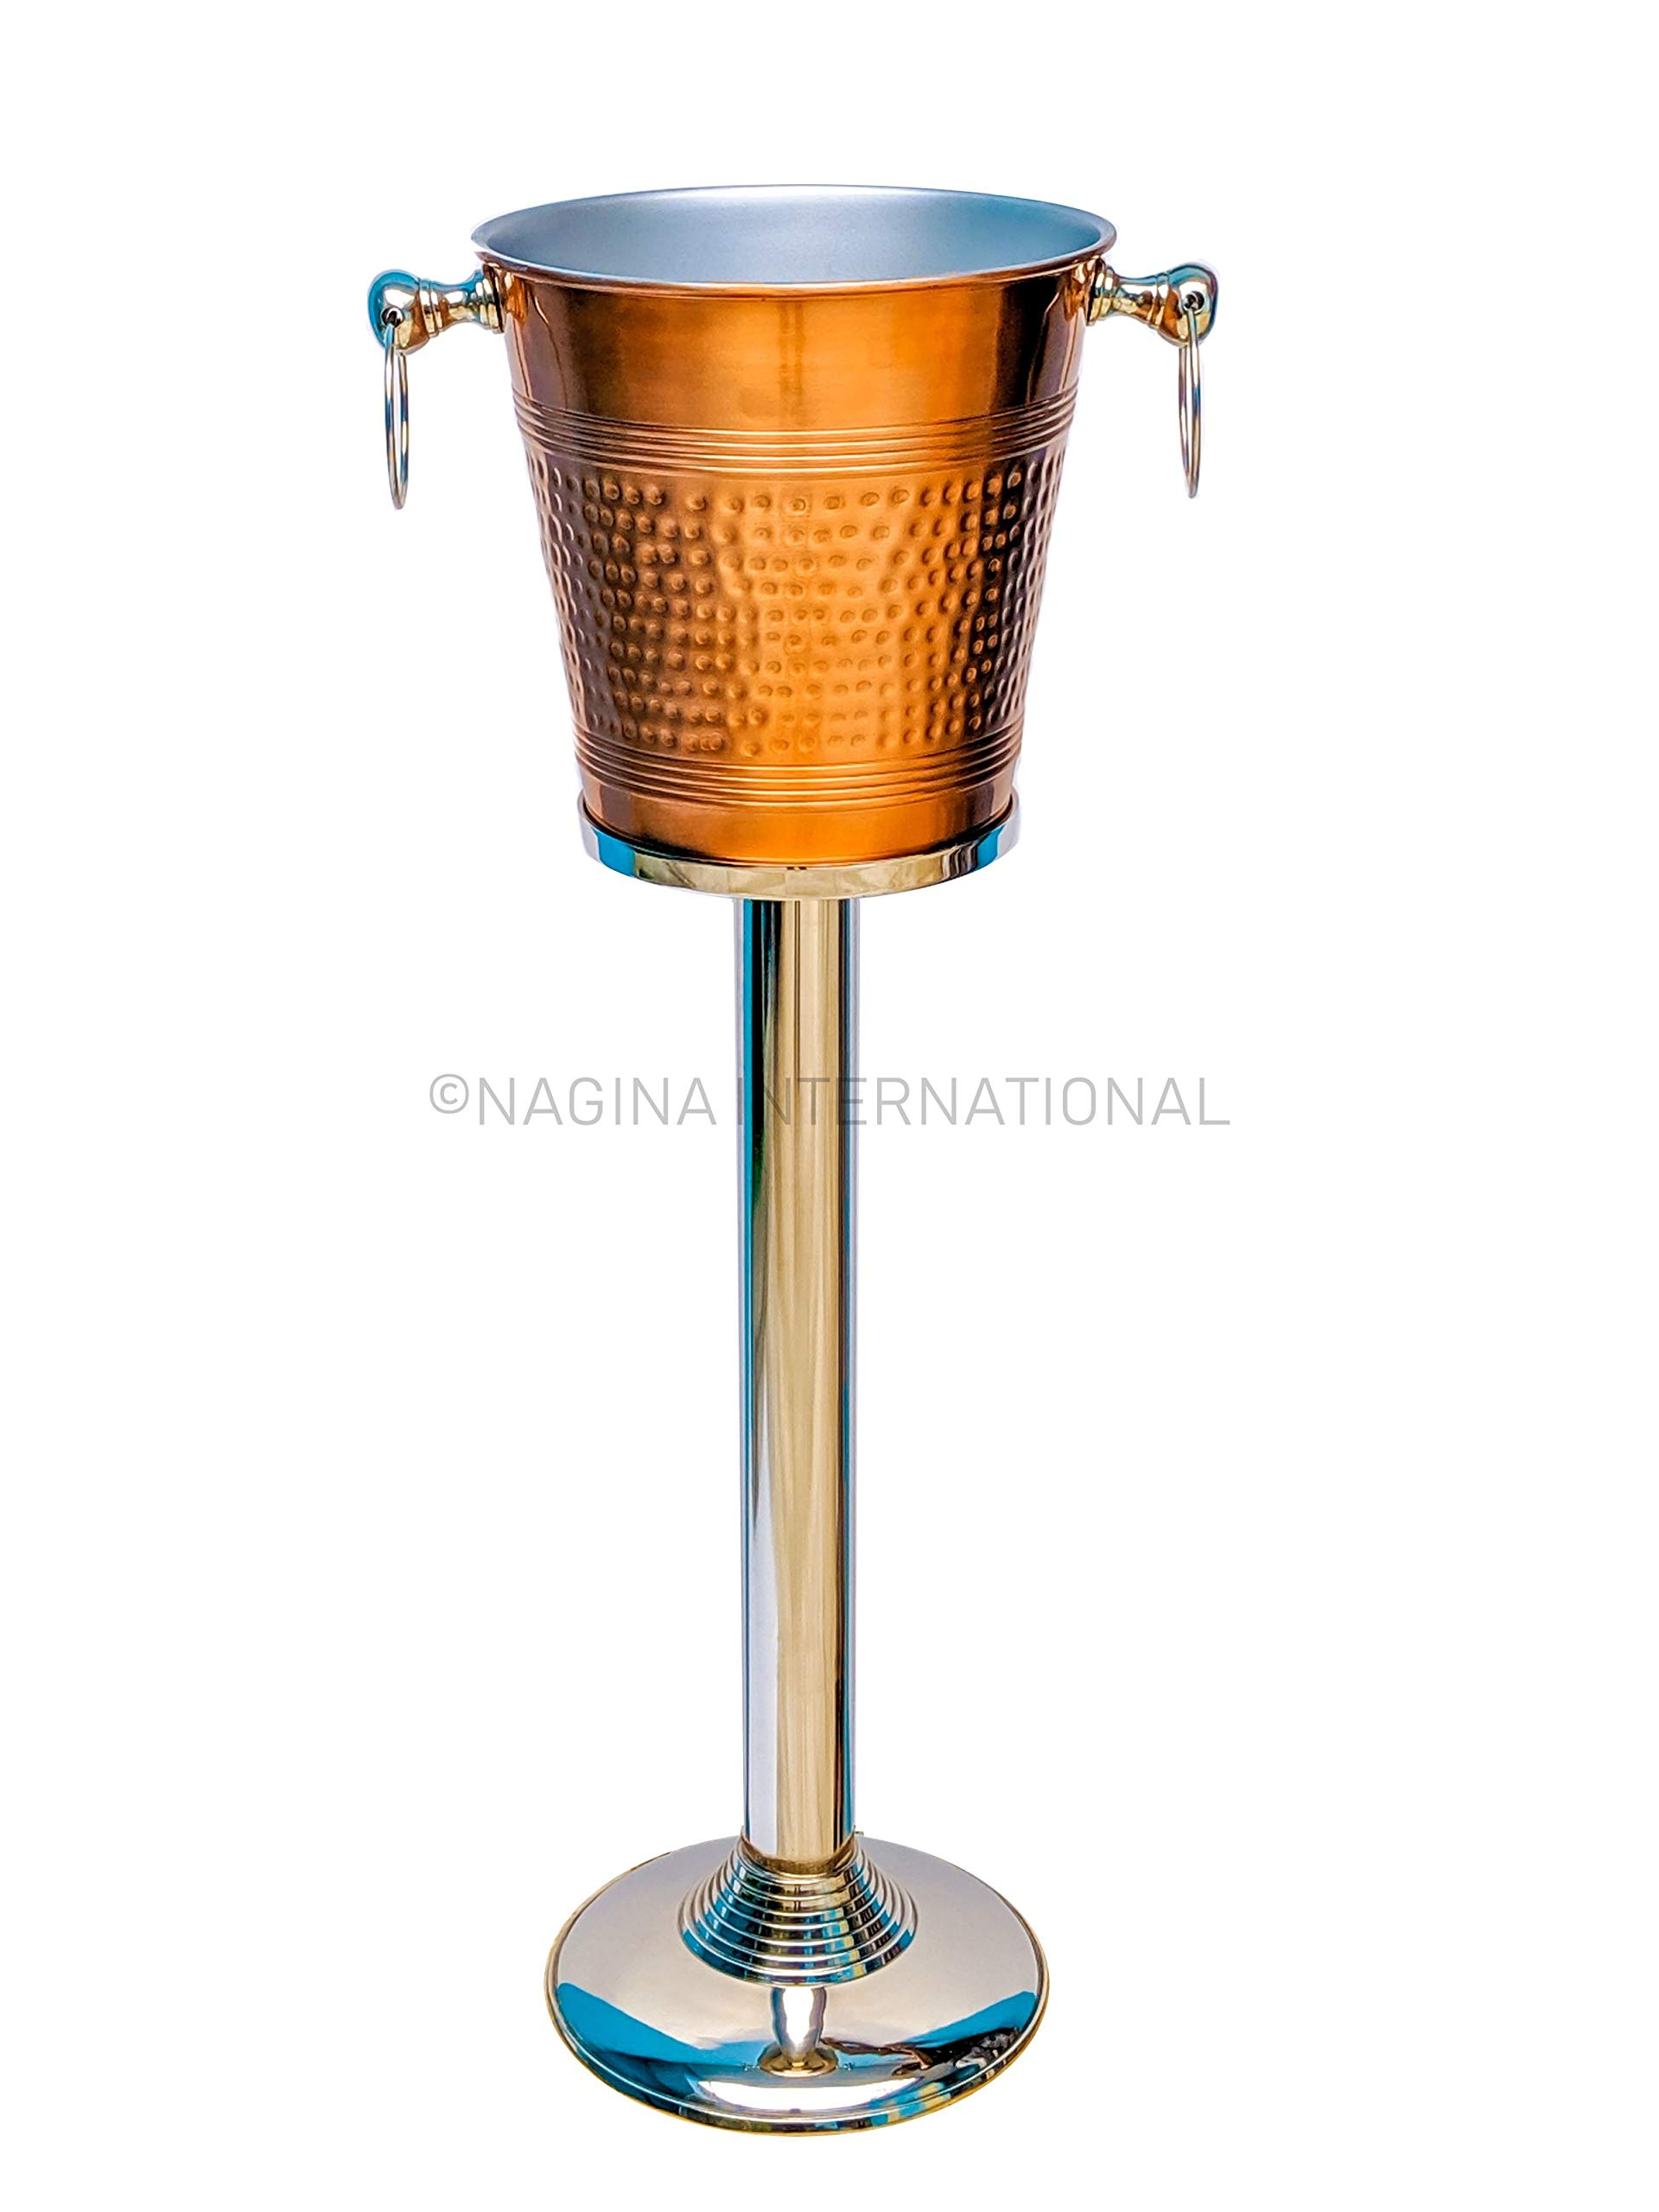 Hammered Copper Lightweight Ice Bucket |Highly Conductive Cooler & Cellar Bucket With Nickel Plated Free Stand | Kitchen Ware & Bar Wares by Nagina International